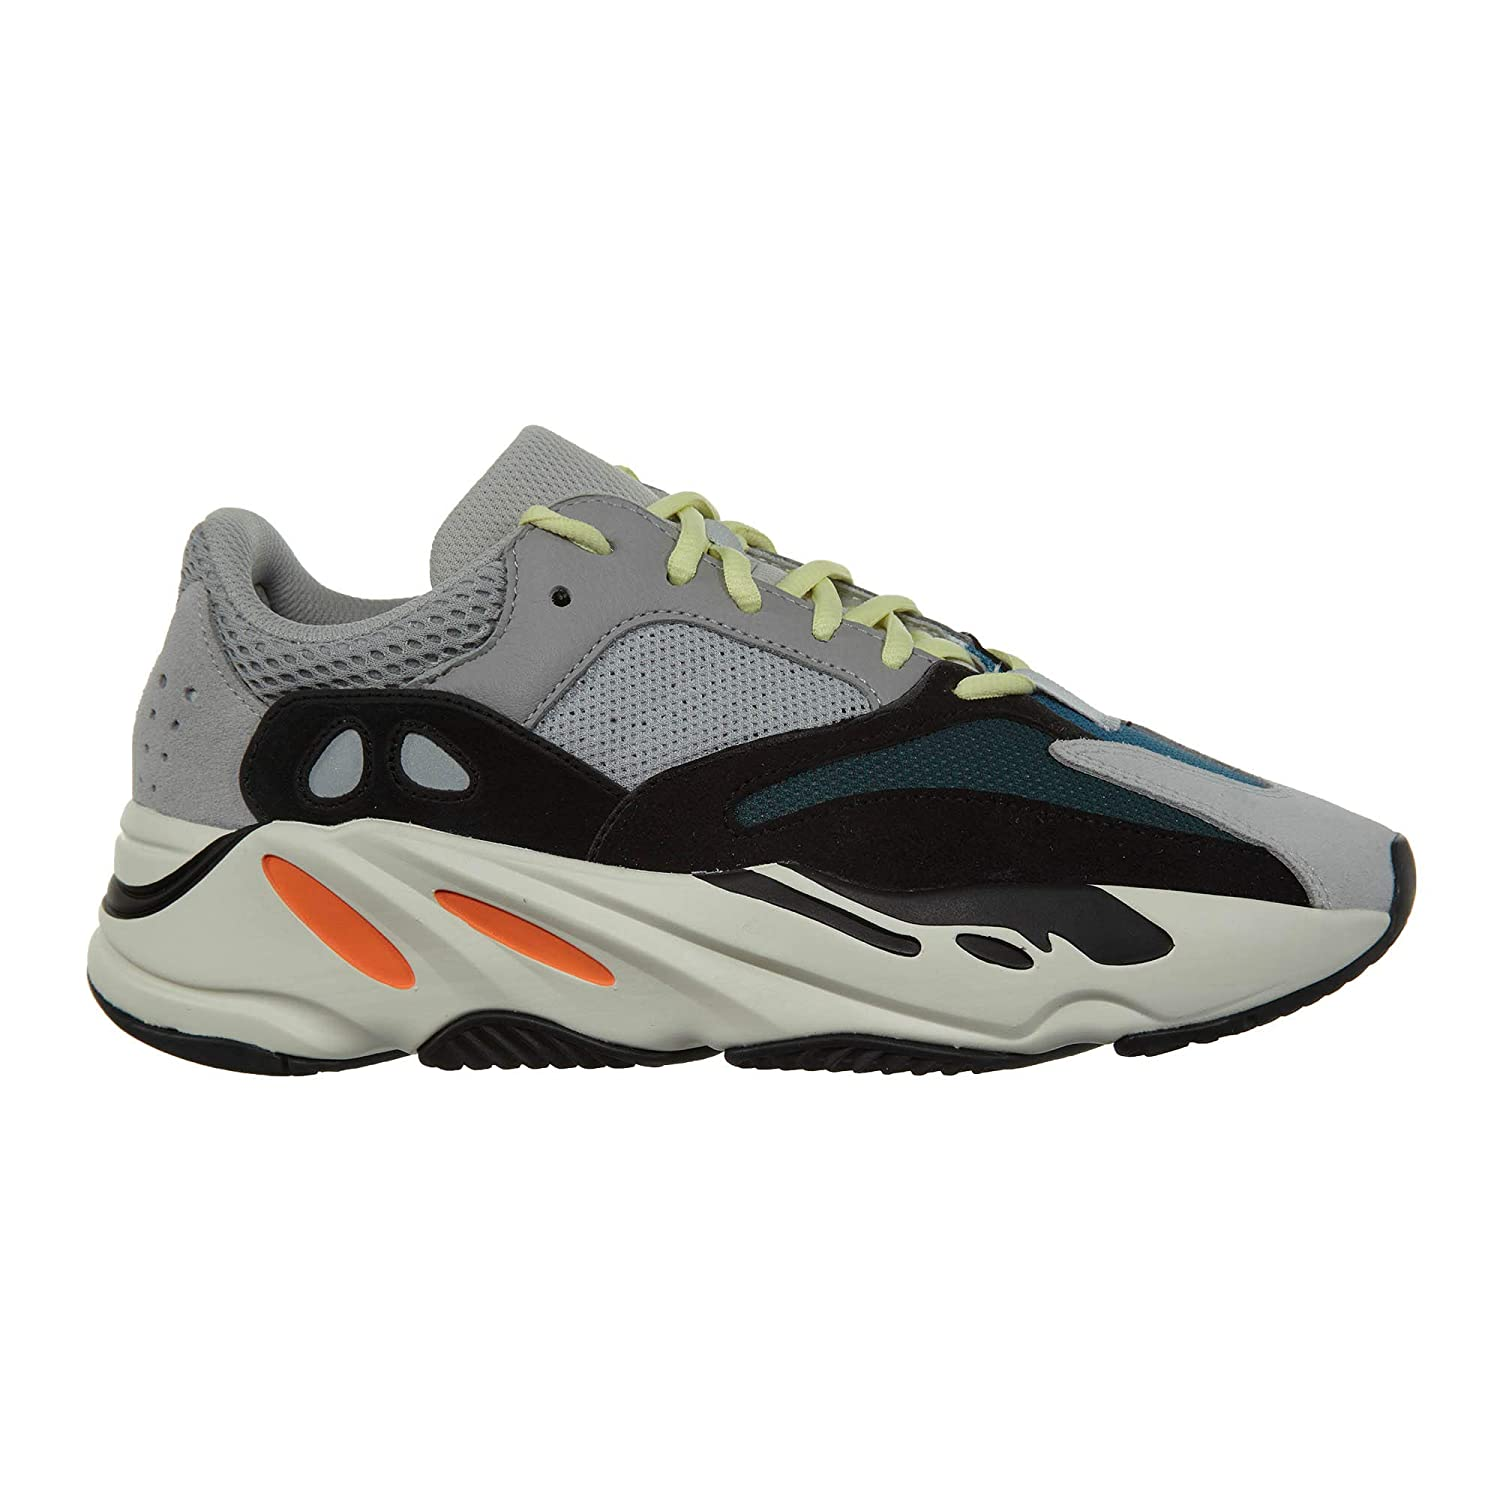 e40edeef Amazon.com | adidas Yeezy Boost 700